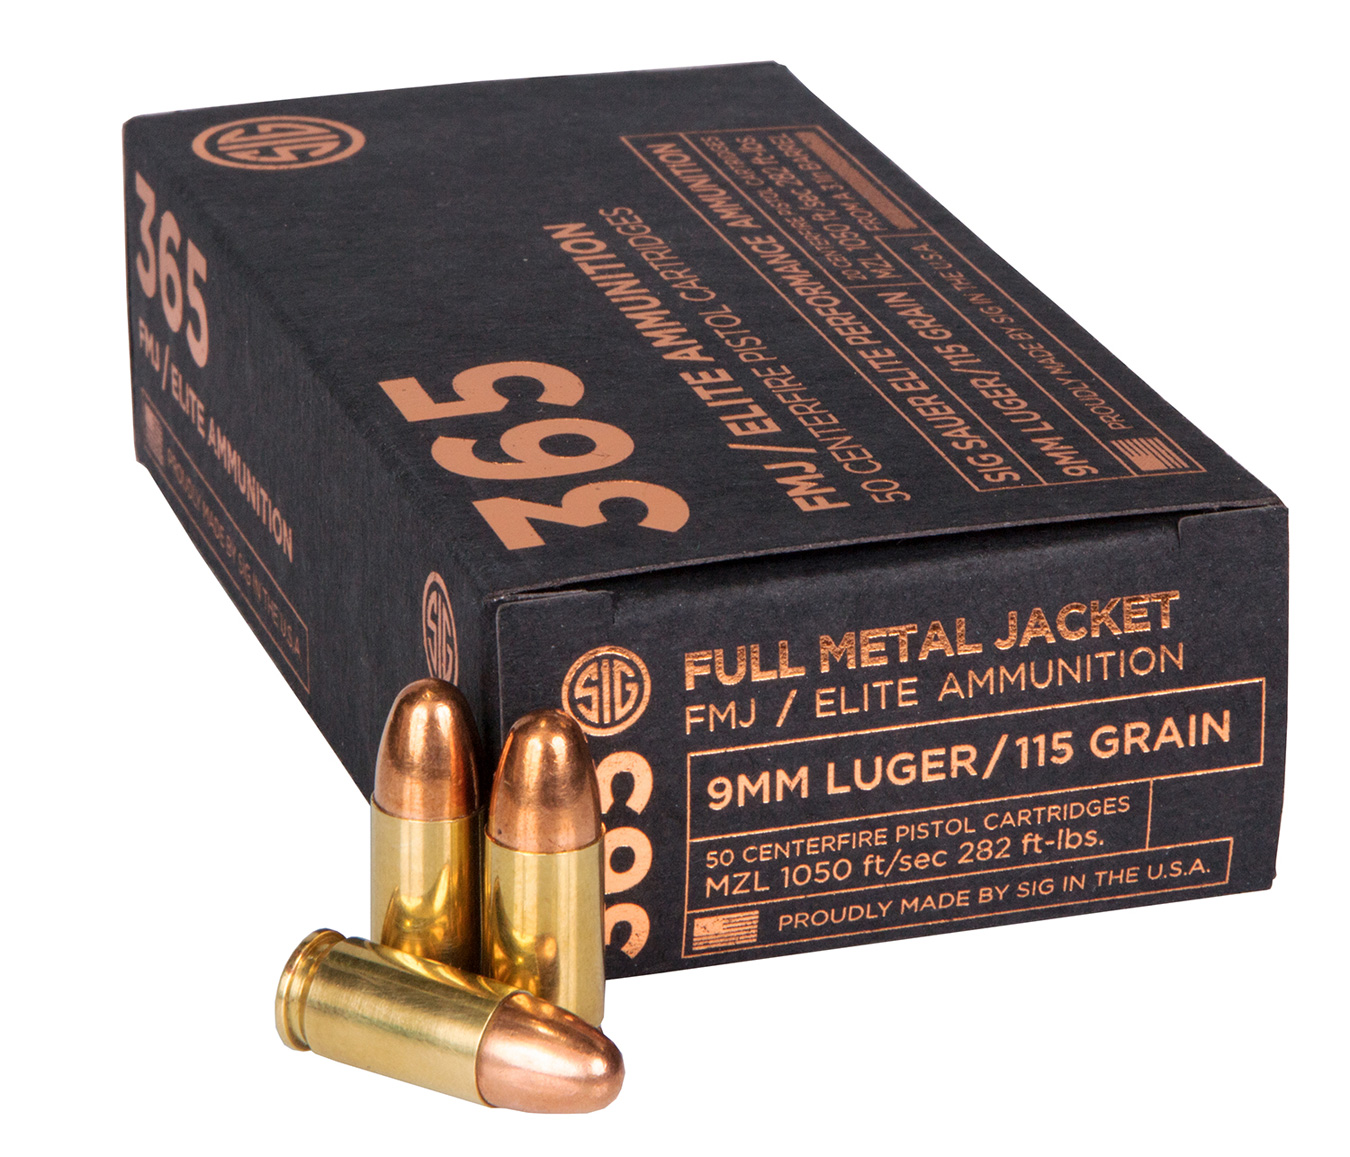 SIG 365 full metal jacket ammunition box